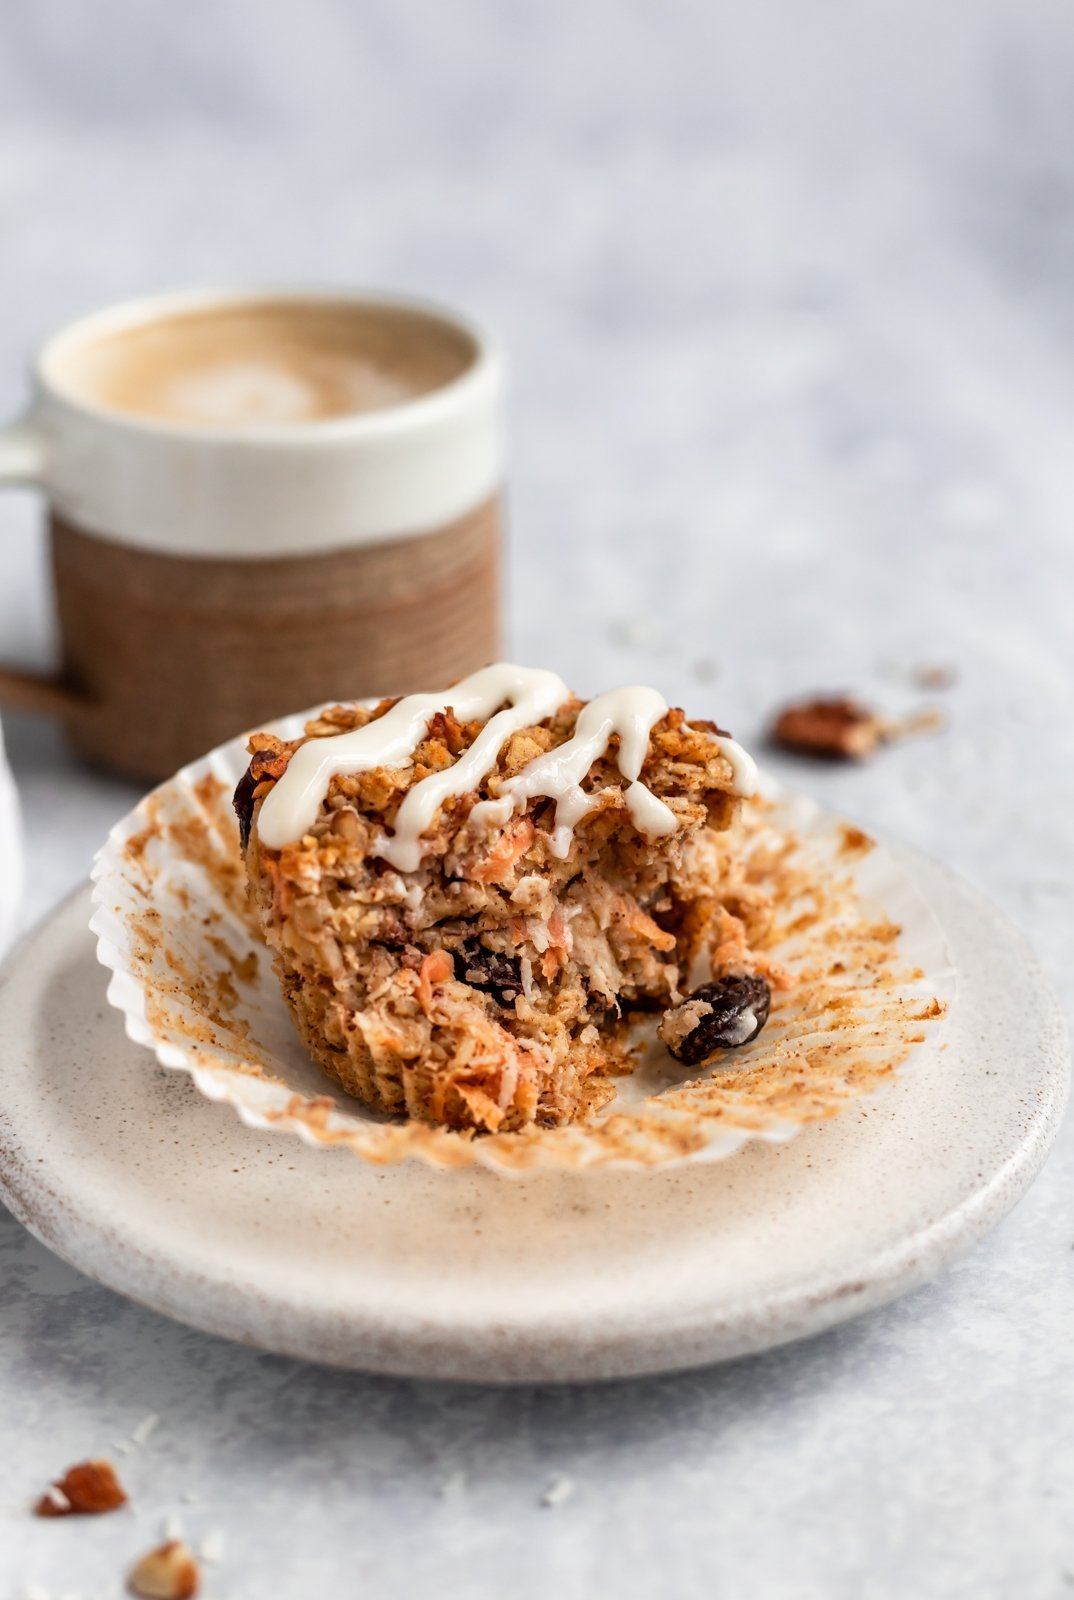 gluten free carrot cake baked oatmeal cup on a plate